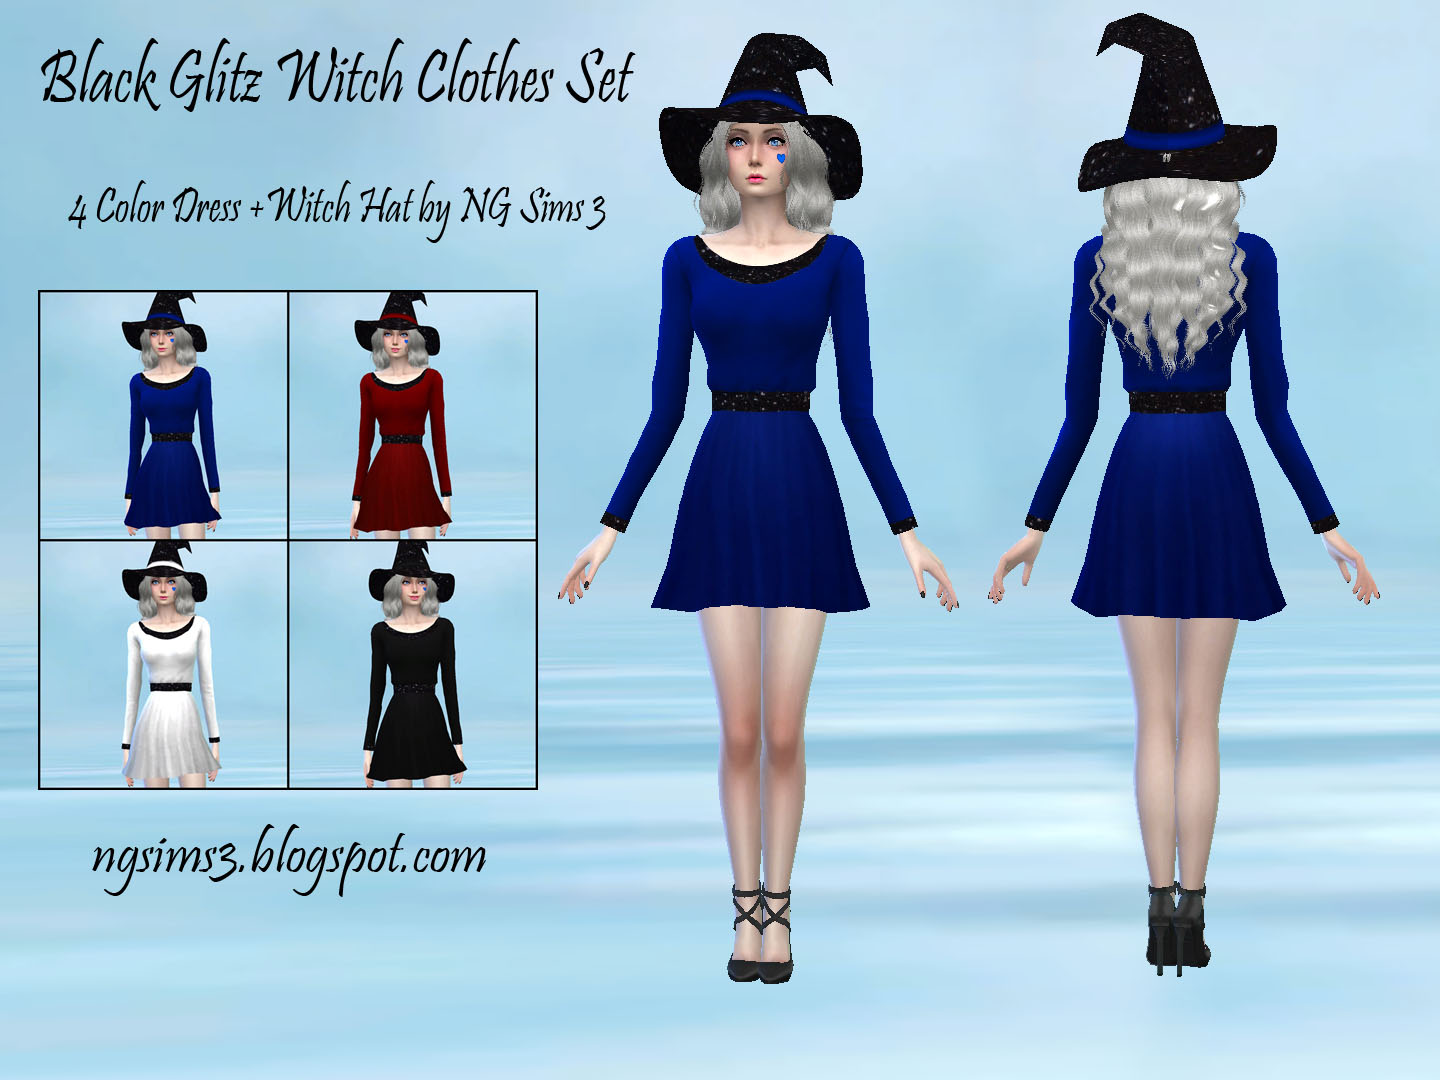 Black Glitz Witch Clothes Set = Dress + Witch Hat by NGSims